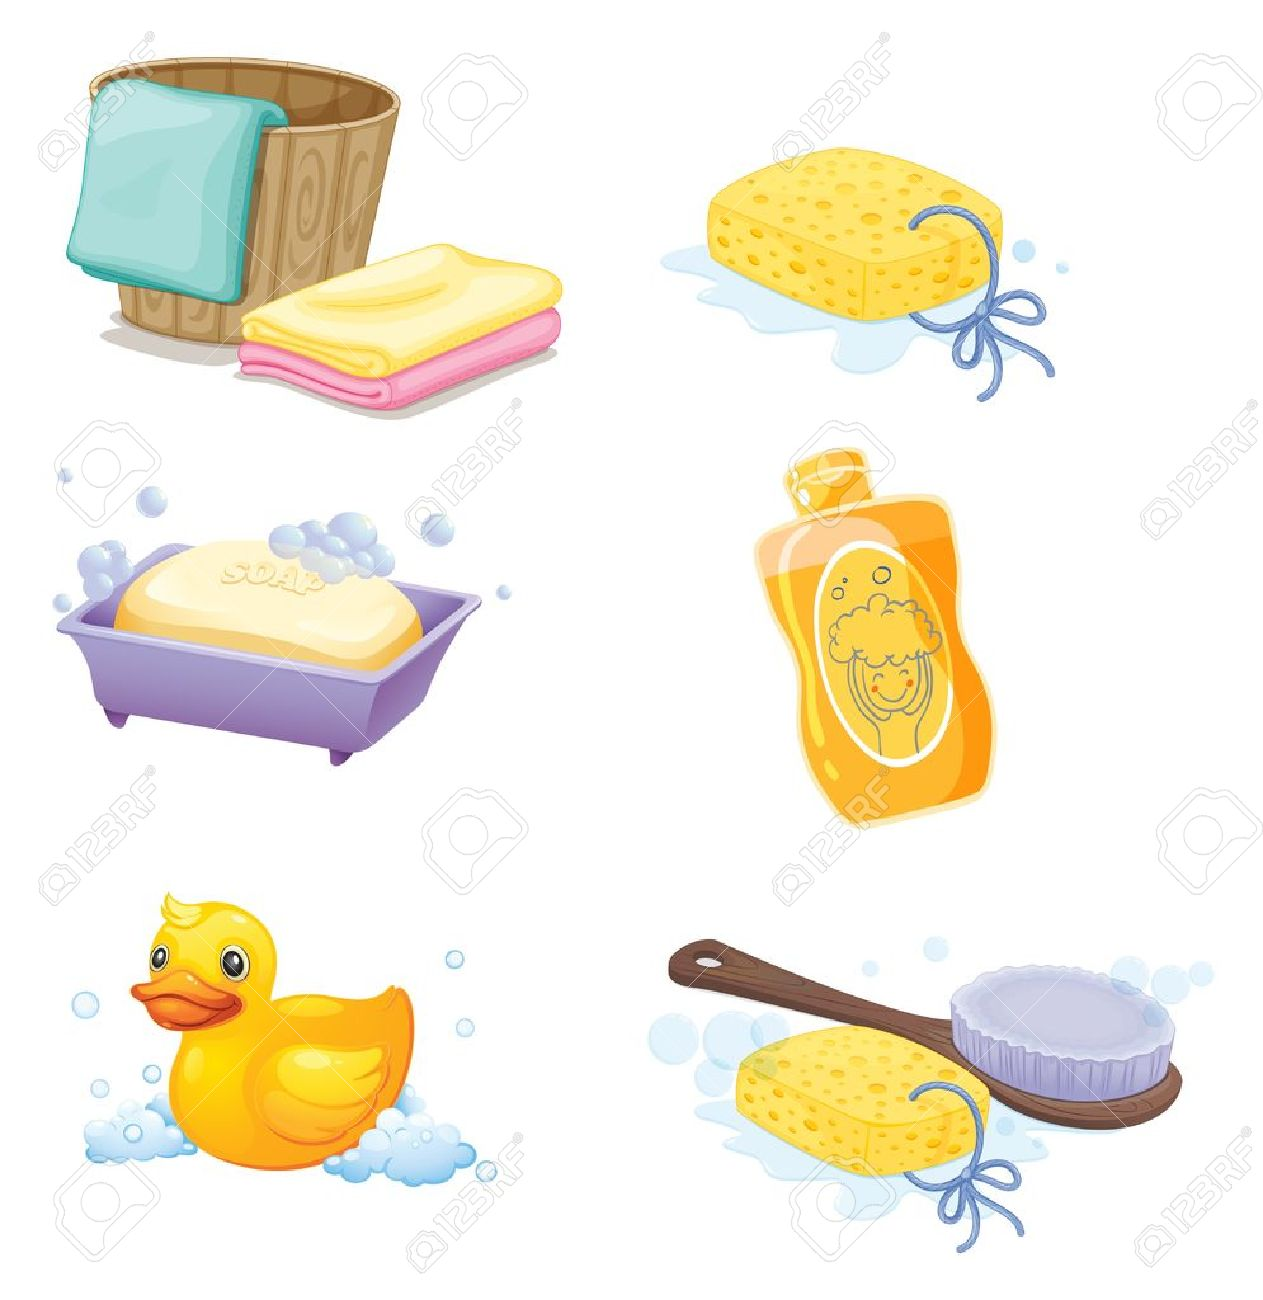 Illustration of the bathroom accessories on a white background - 18458309